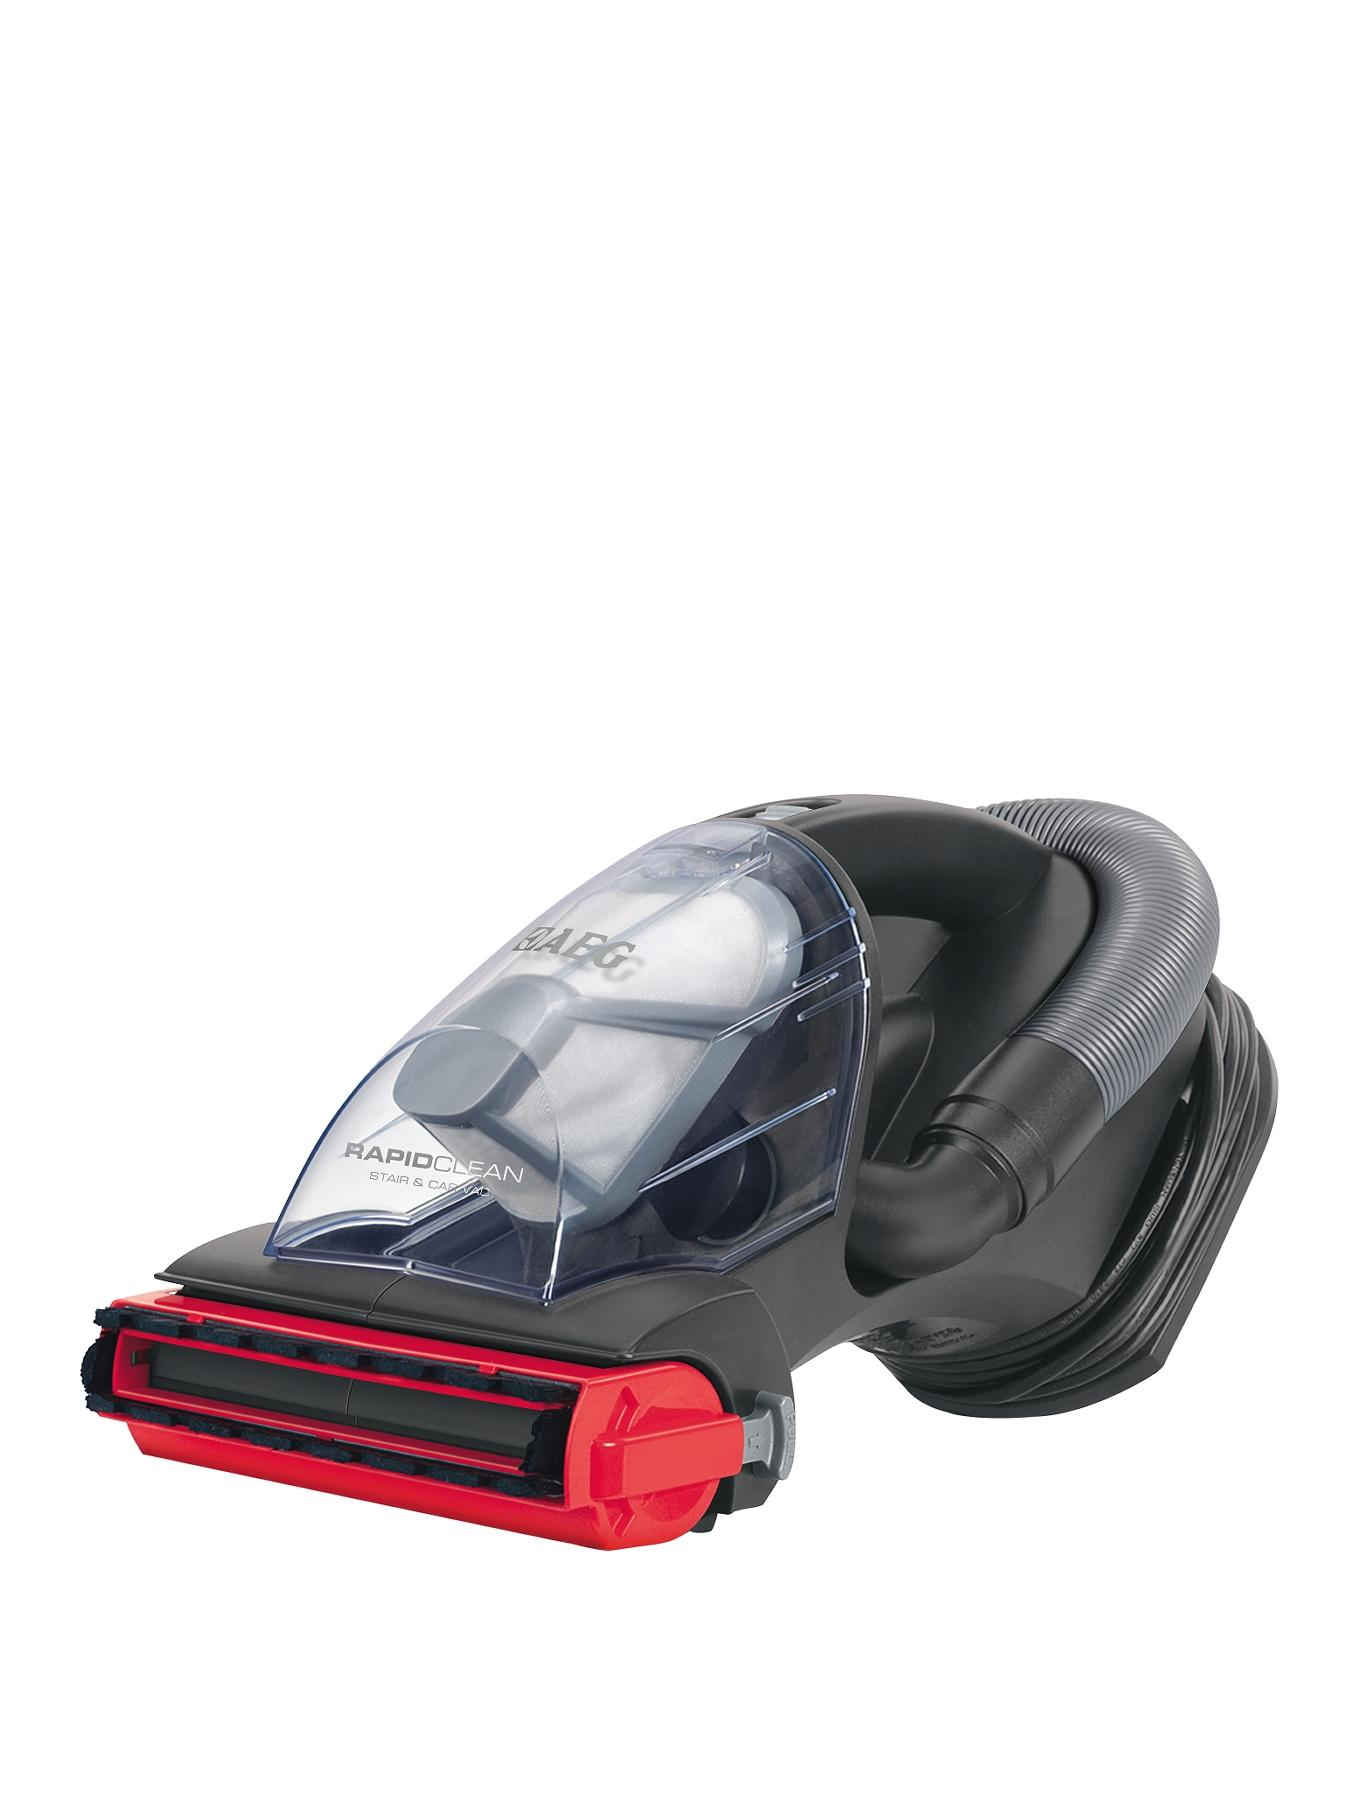 AG71 Stair and Car Handheld Vacuum Cleaner